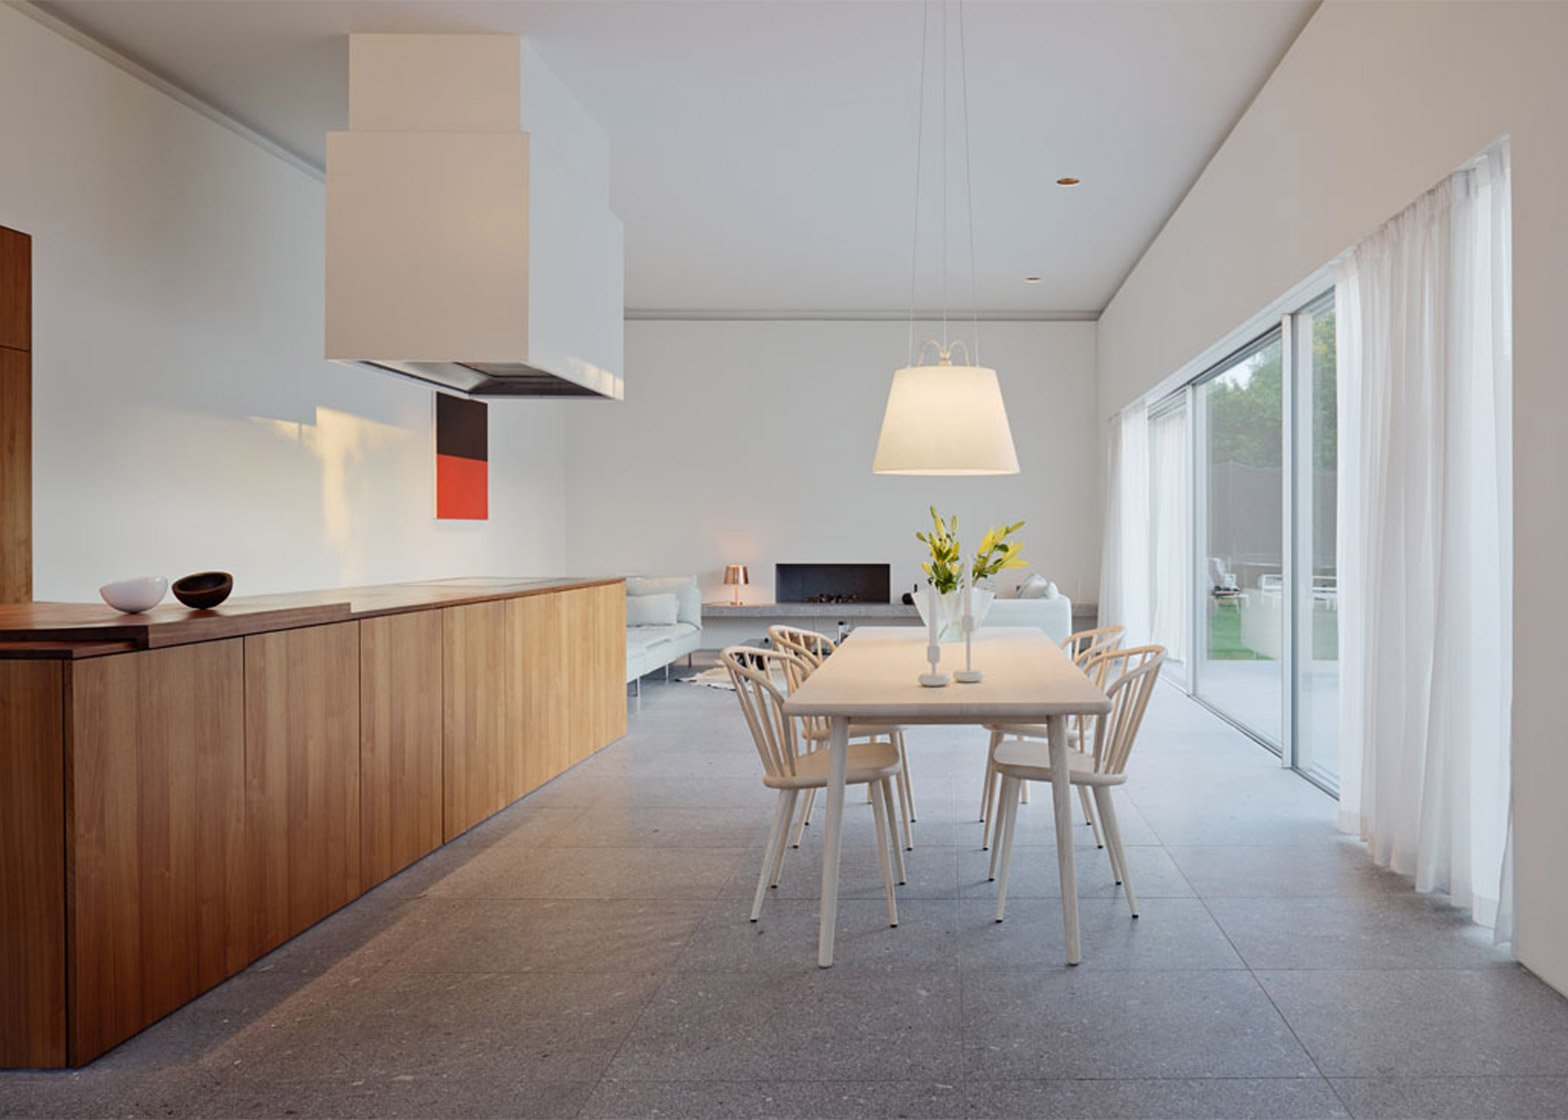 2 of 9 villa j2 by jonas lindvall